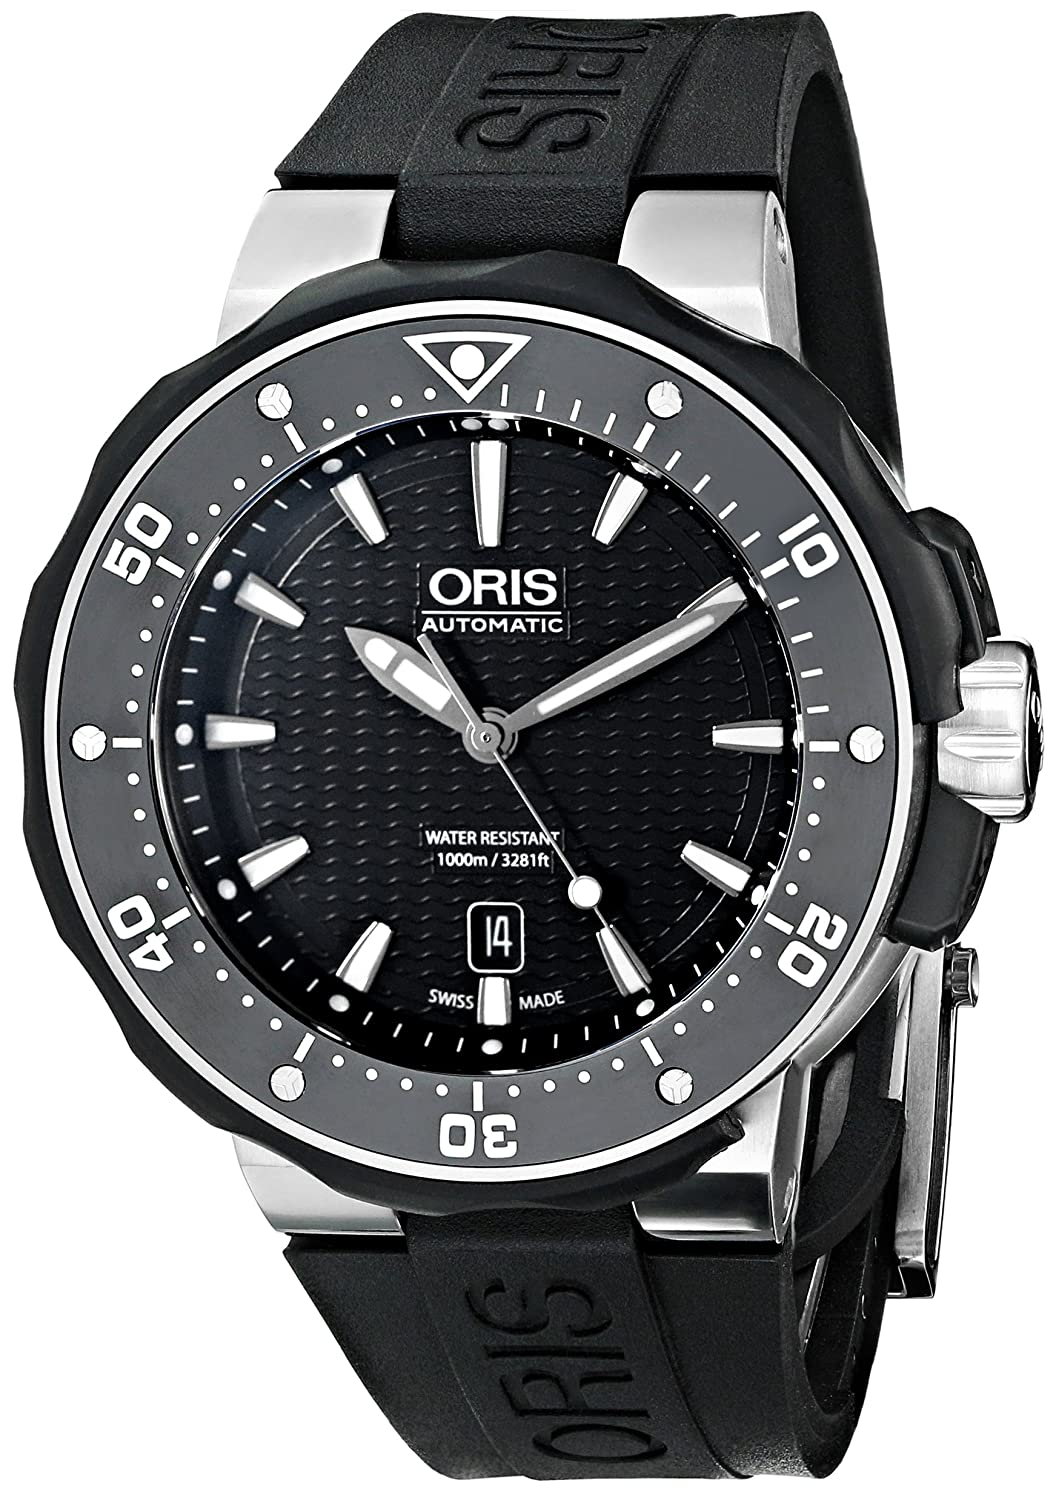 edition or ii watches limited doctor collections watch service products oris set ls flying d royal